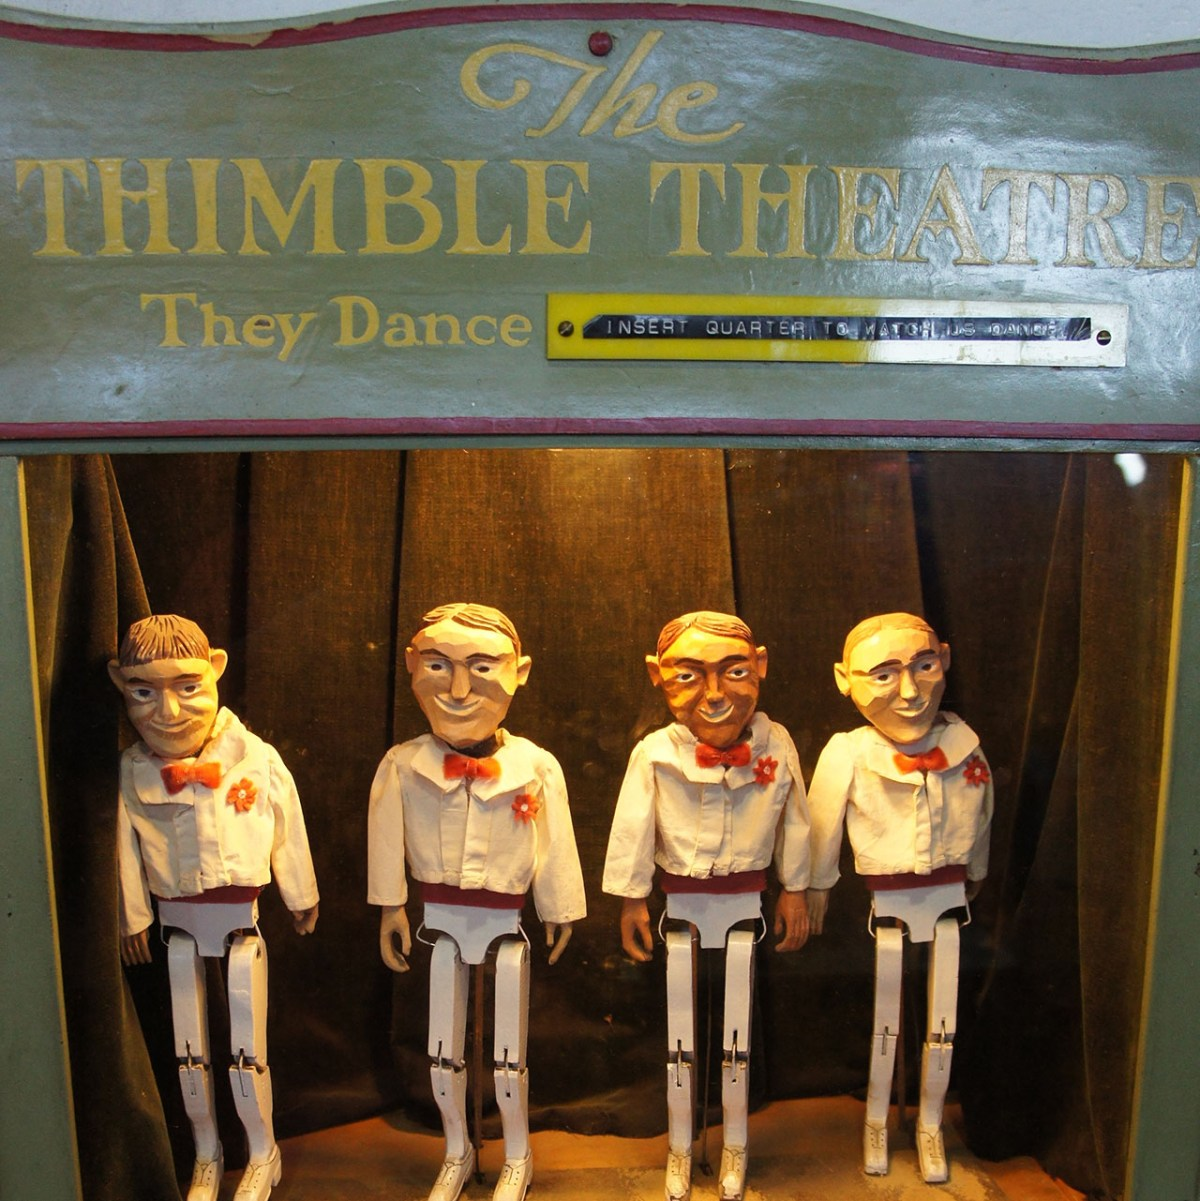 Nimble wooden dancers show off their steps on the Thimble Theatre's small stage at Musée Mécanique. (Photo/Patricia Corrigan)